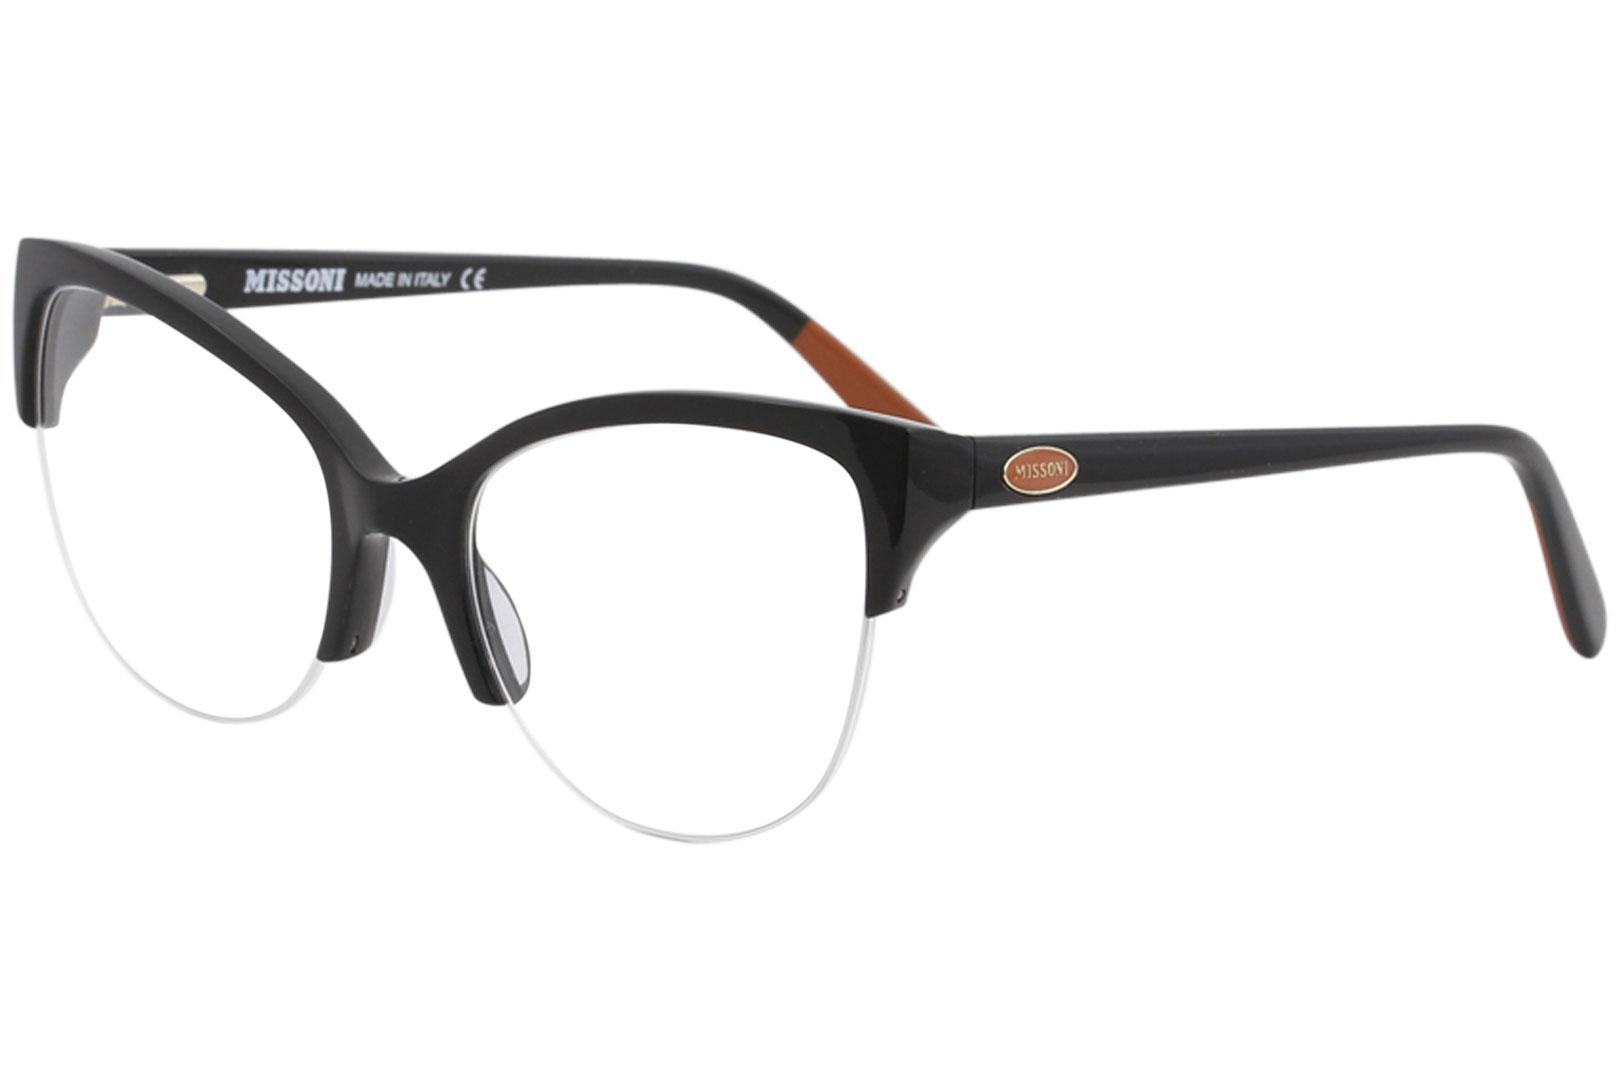 Image of Missoni Women's Eyeglasses MI316V MI/316/V Full Rim Optical Frame 55mm - 01 Black - Lens 55 Bridge 19 Temple 140mm